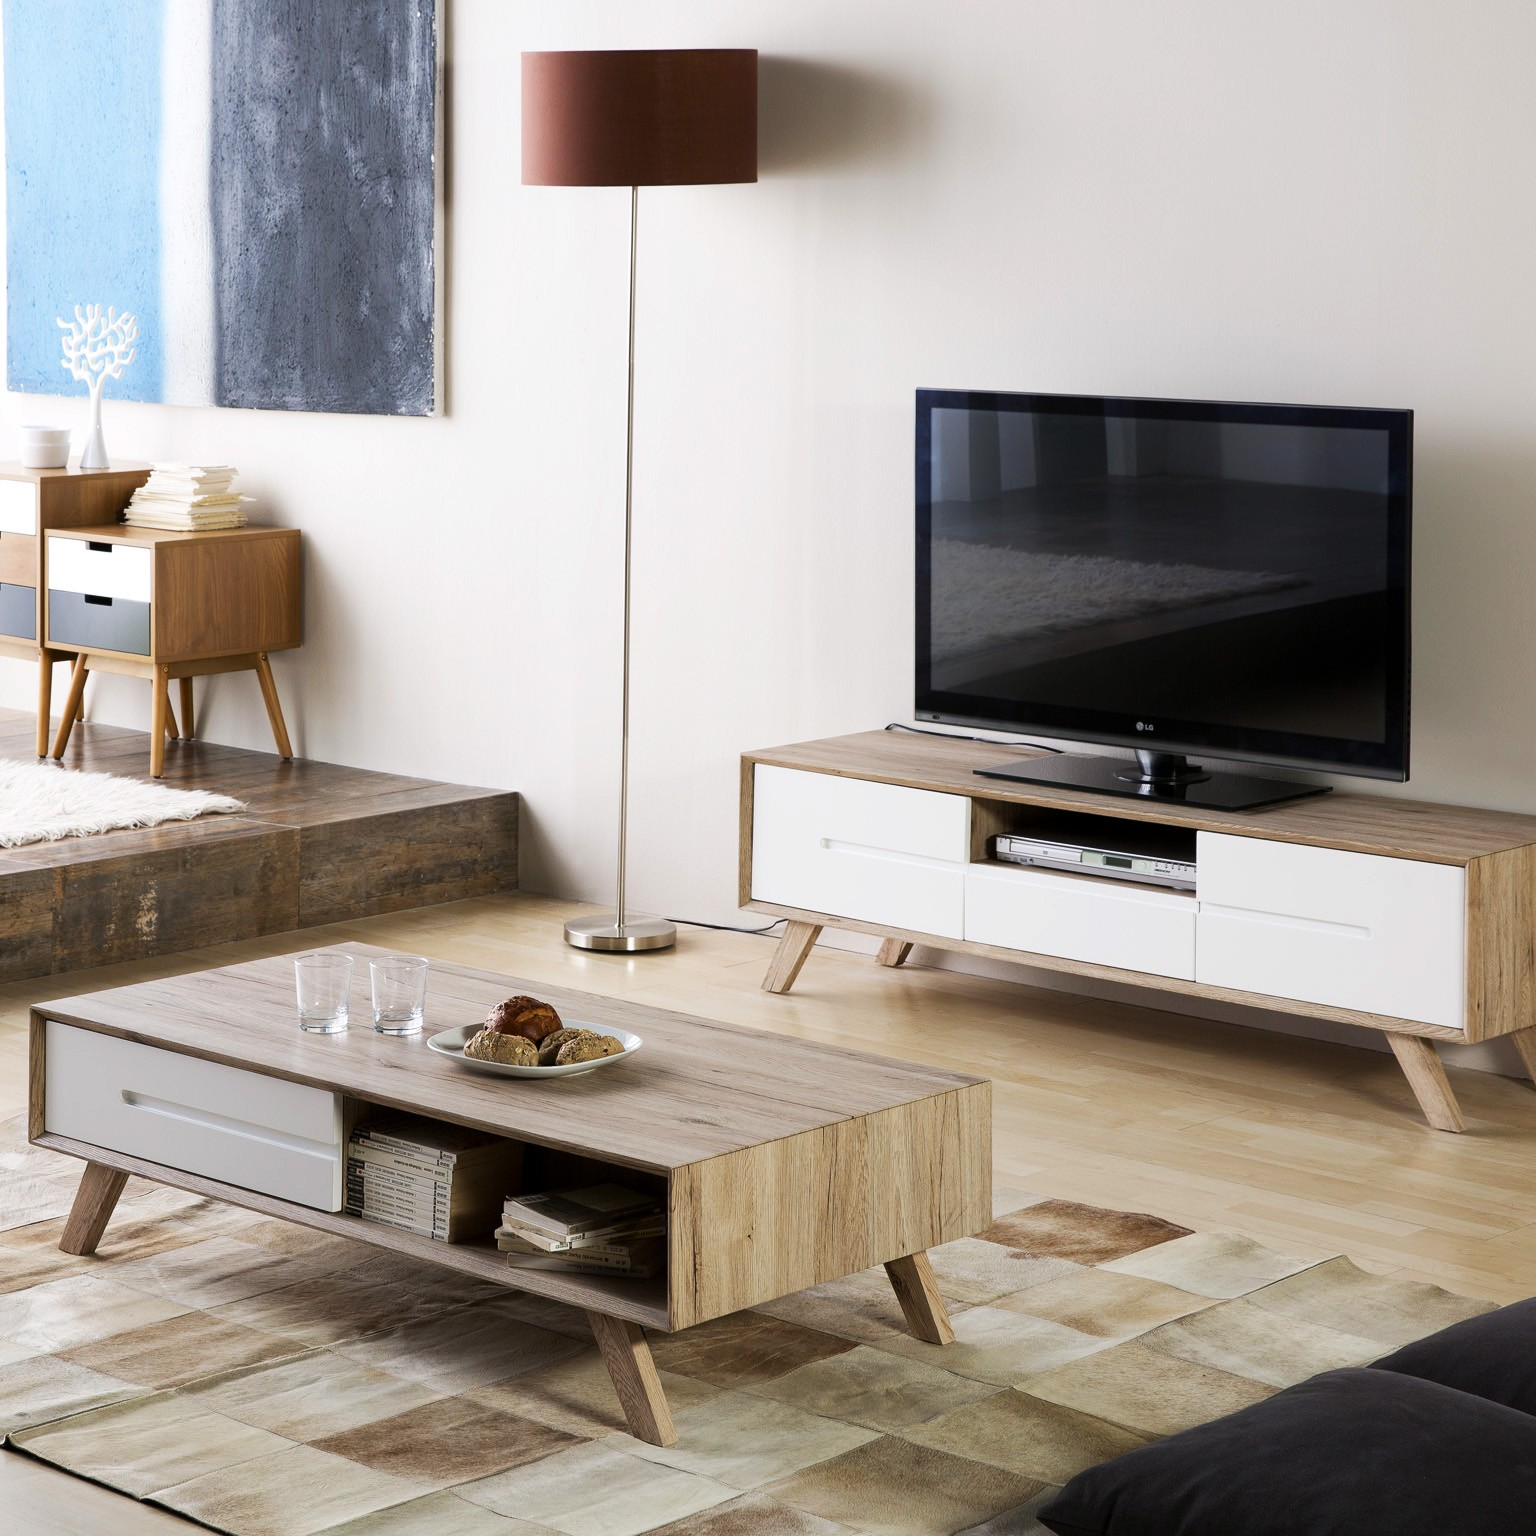 Table Basse Tv Promo Pack Meuble Tv Table Basse Olie Blanc Lemobilier Ma